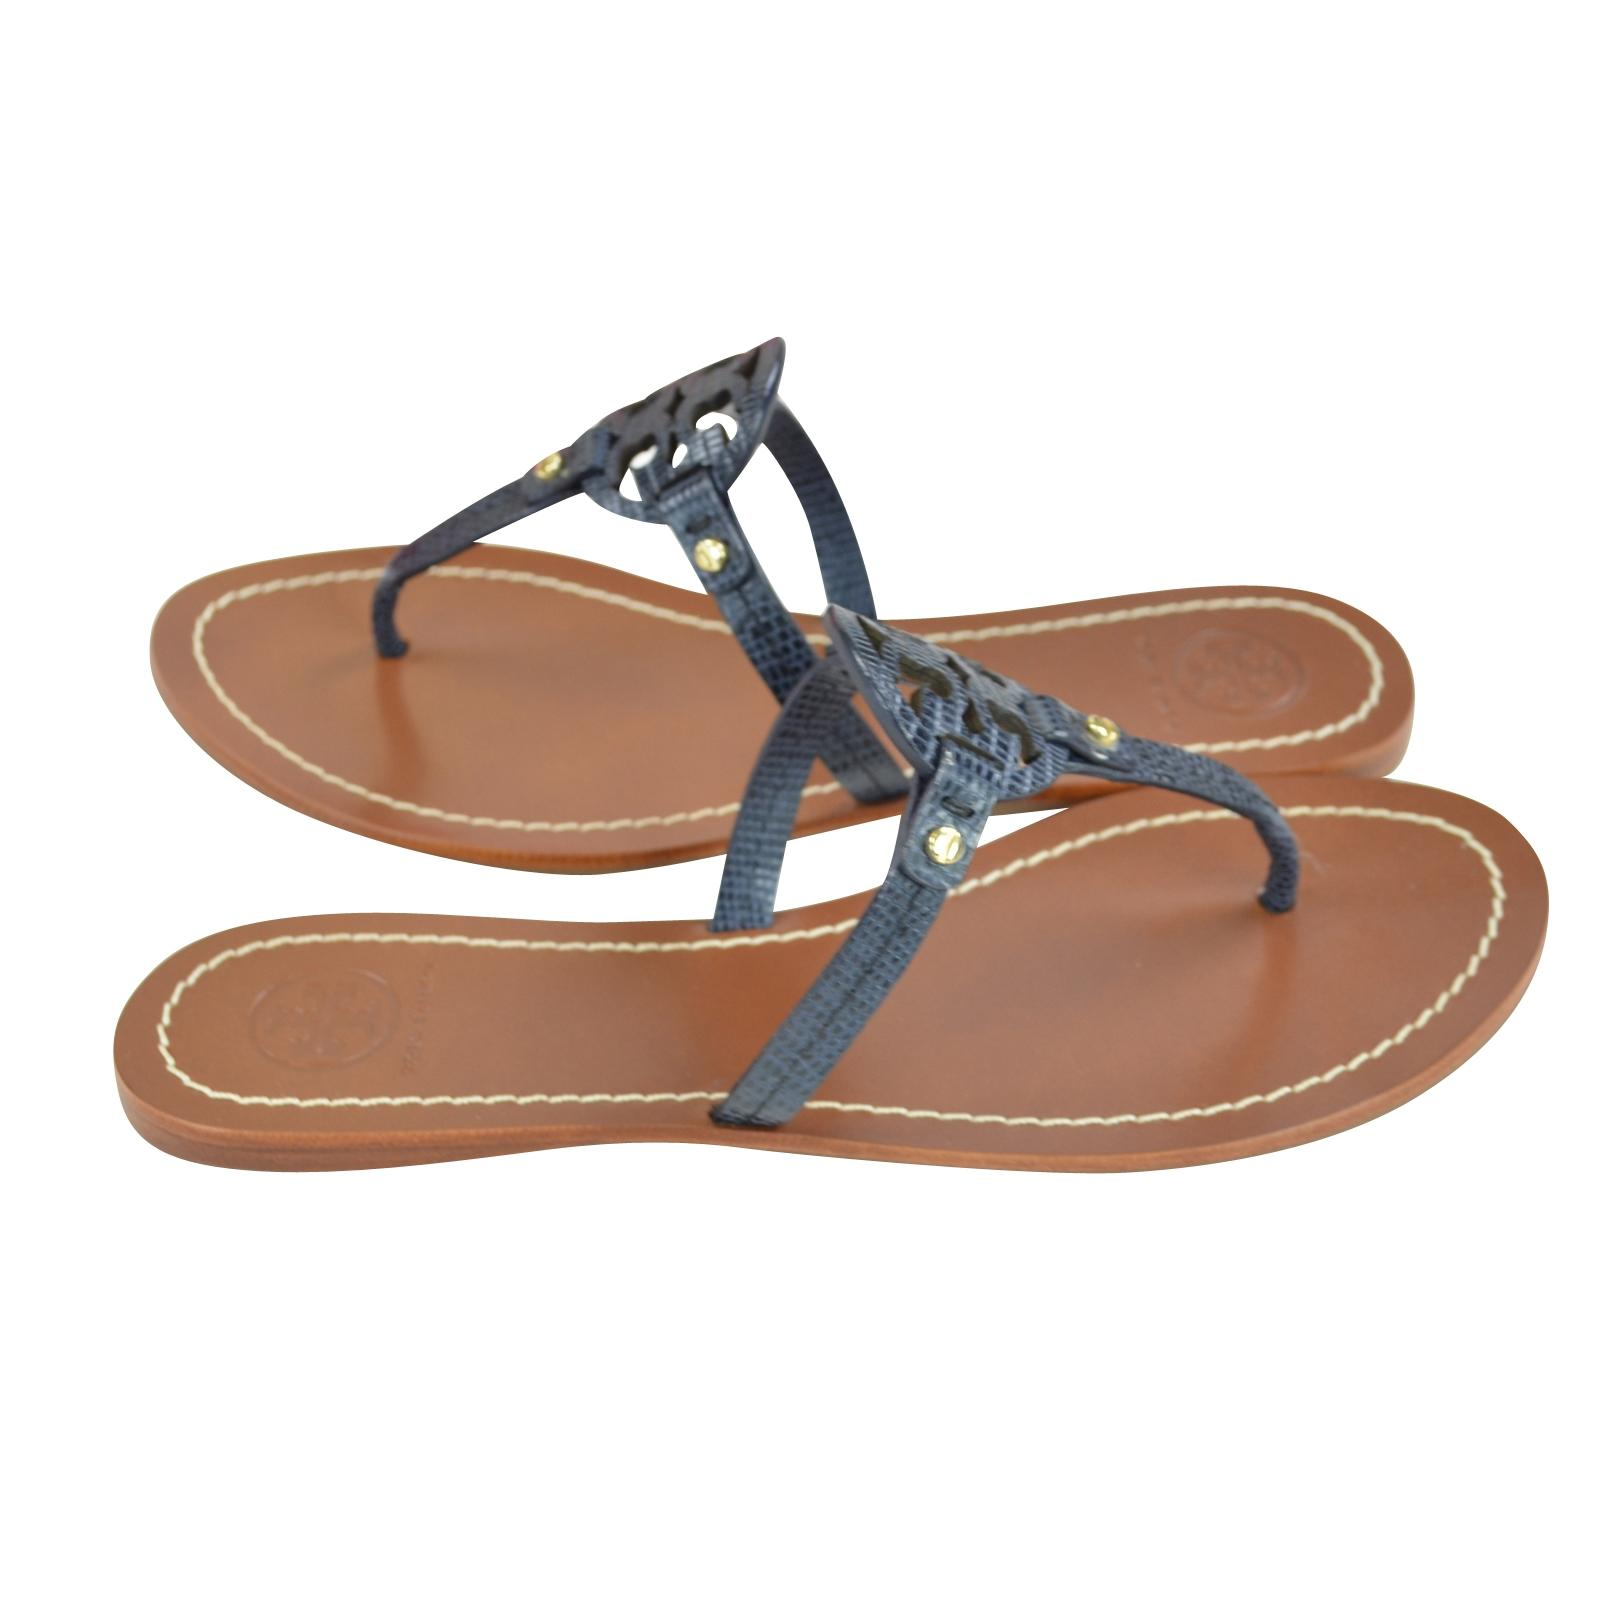 6acddc42d209f5 ... Tory Burch Burch Burch Navy Mini Miller Tejust Print Sandals Size US  6.5 Regular (M ...